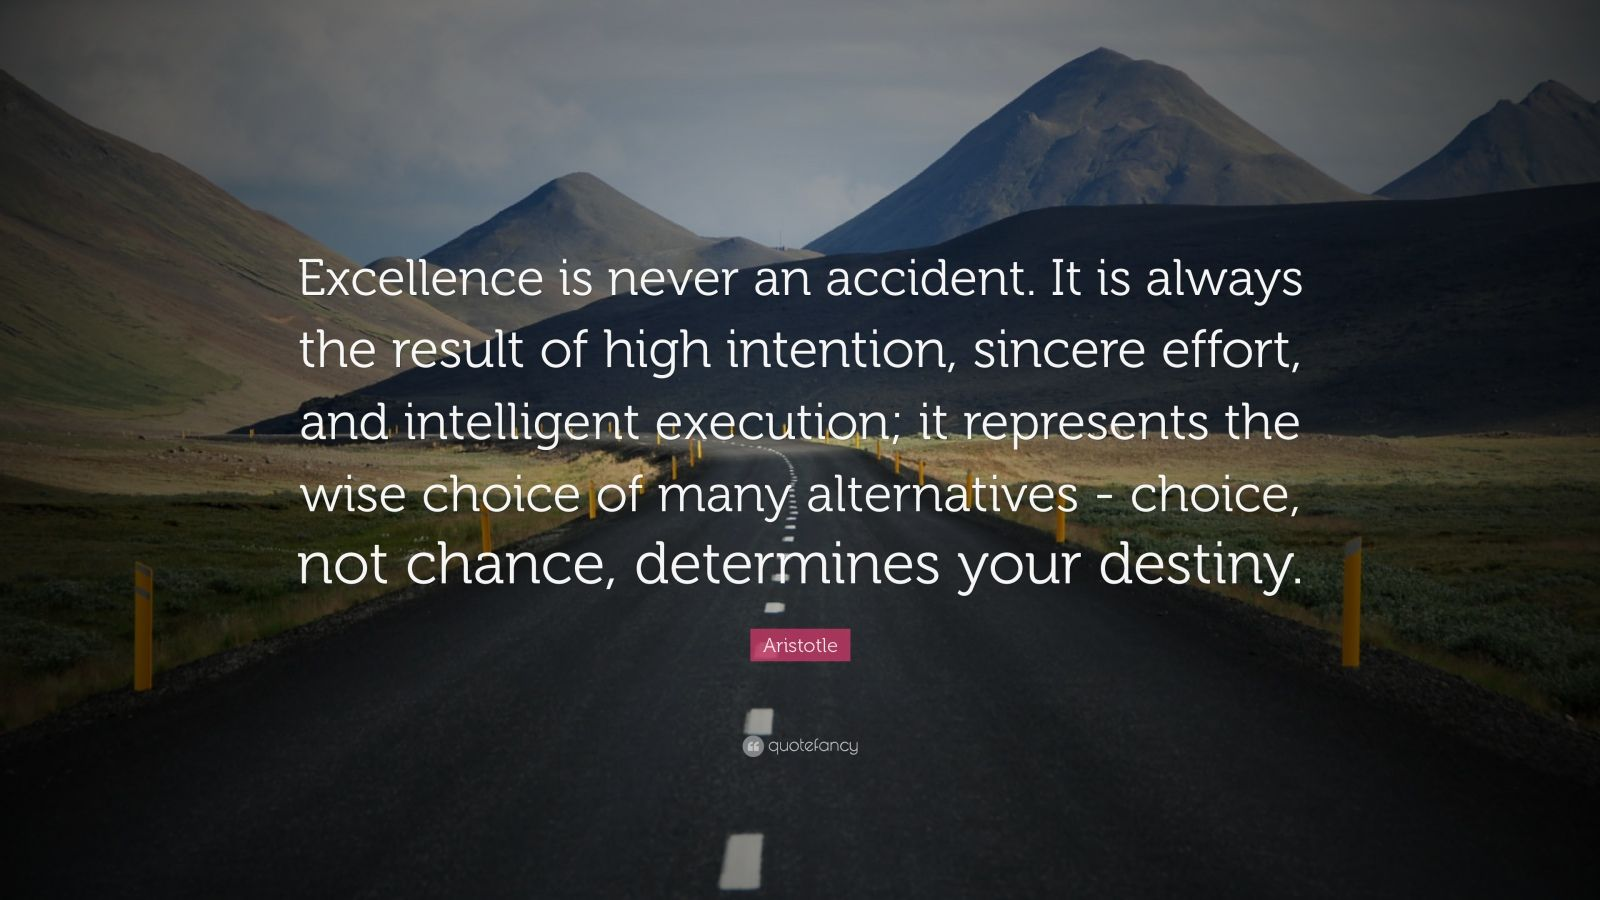 aristotle on excellence in leadership 1 post published by babou on february 4, 2013 daily archives: february 4, 2013 excellence in leadership aristotle once said we are what we repeatedly do excellence, then, is not an act, but a habit.